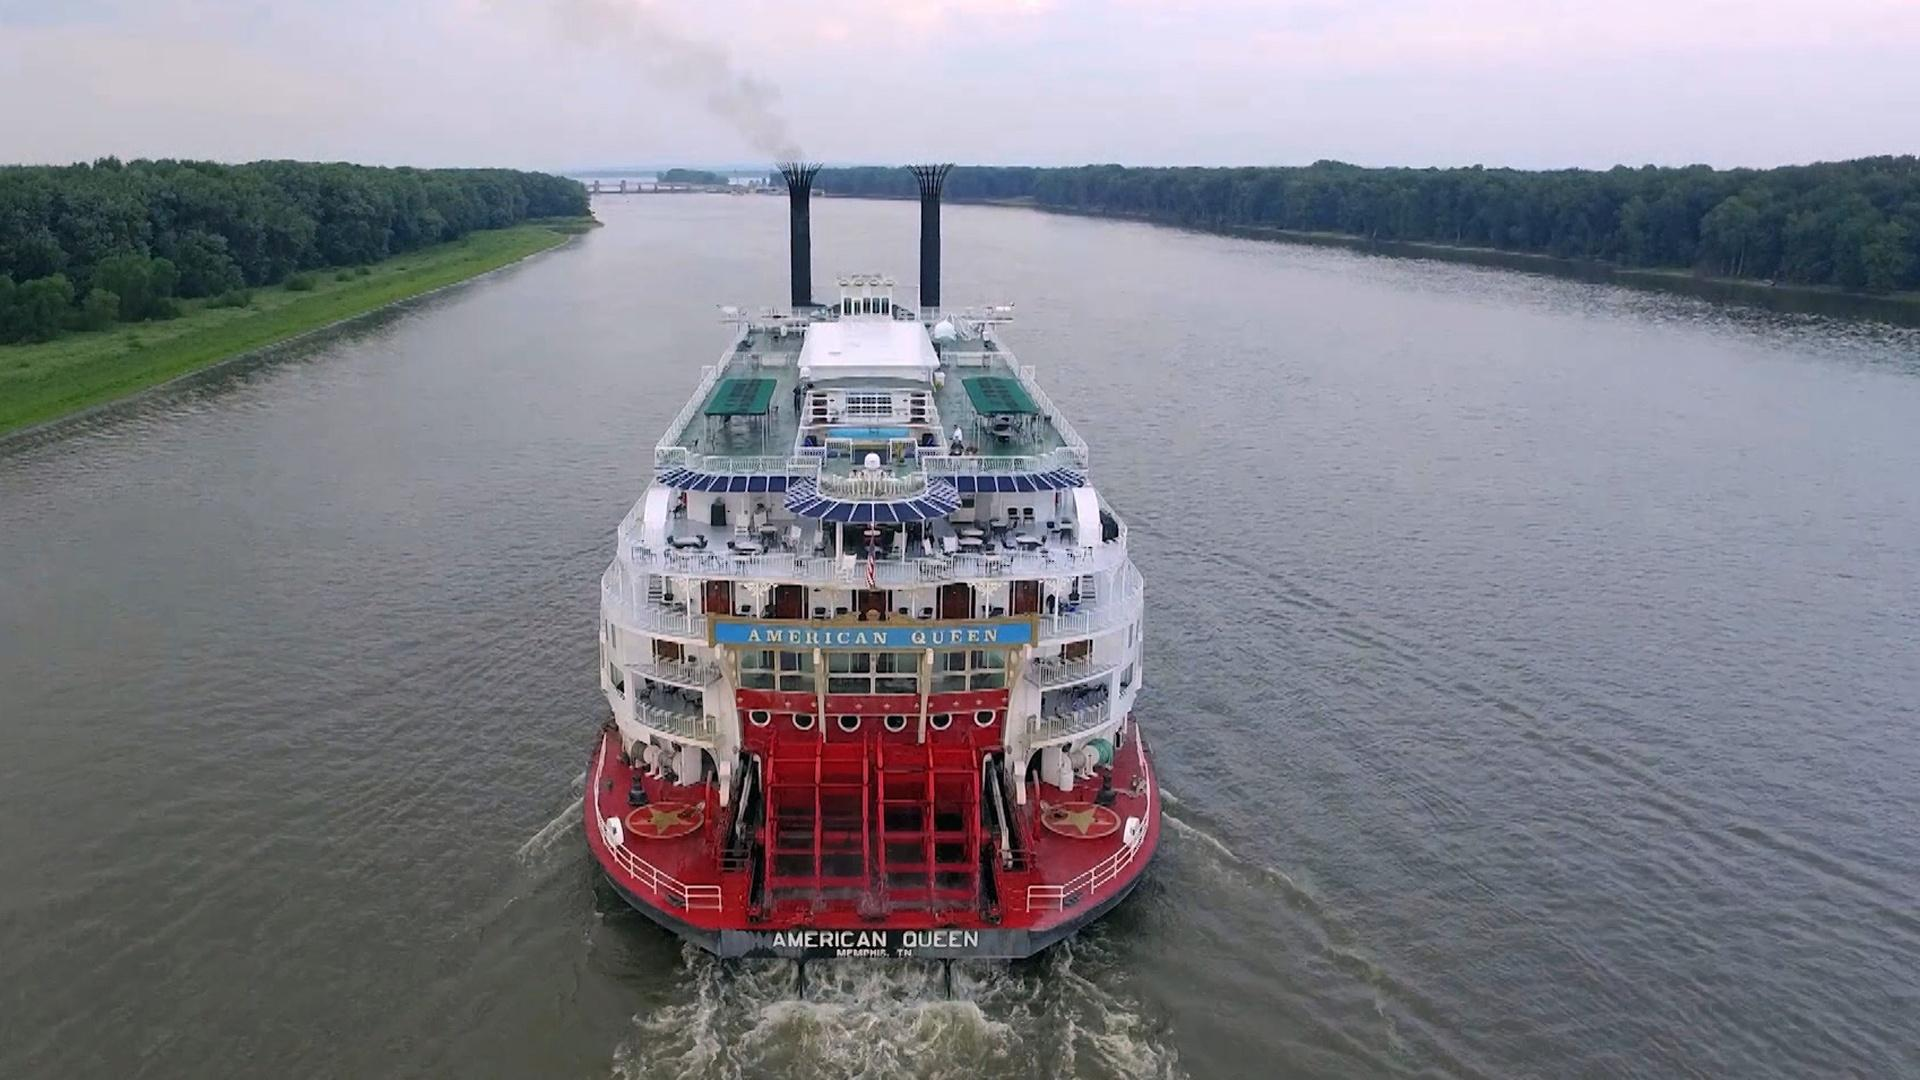 The American Queen on the Mississippi